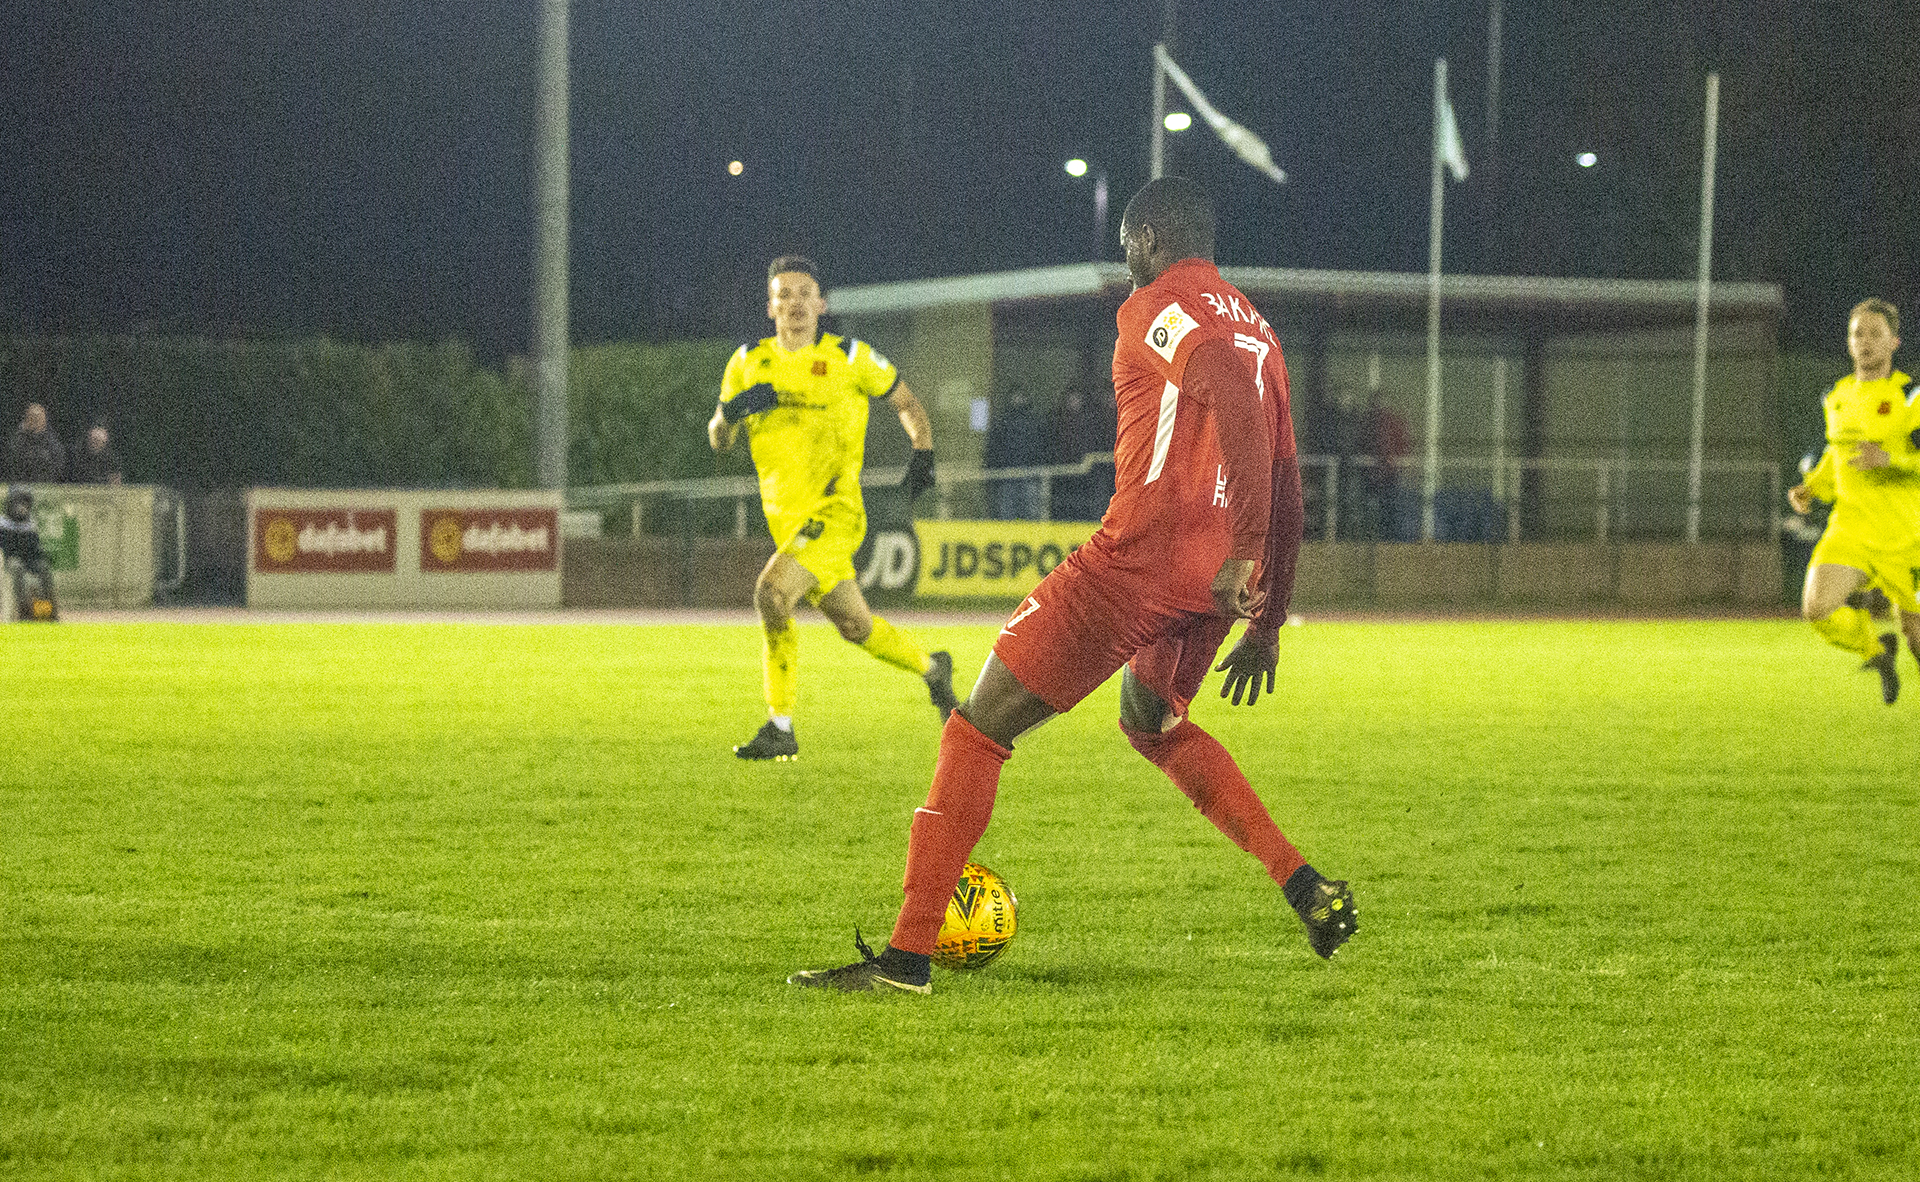 Michael Bakare coolly slots home late in the second half | © NCM Media